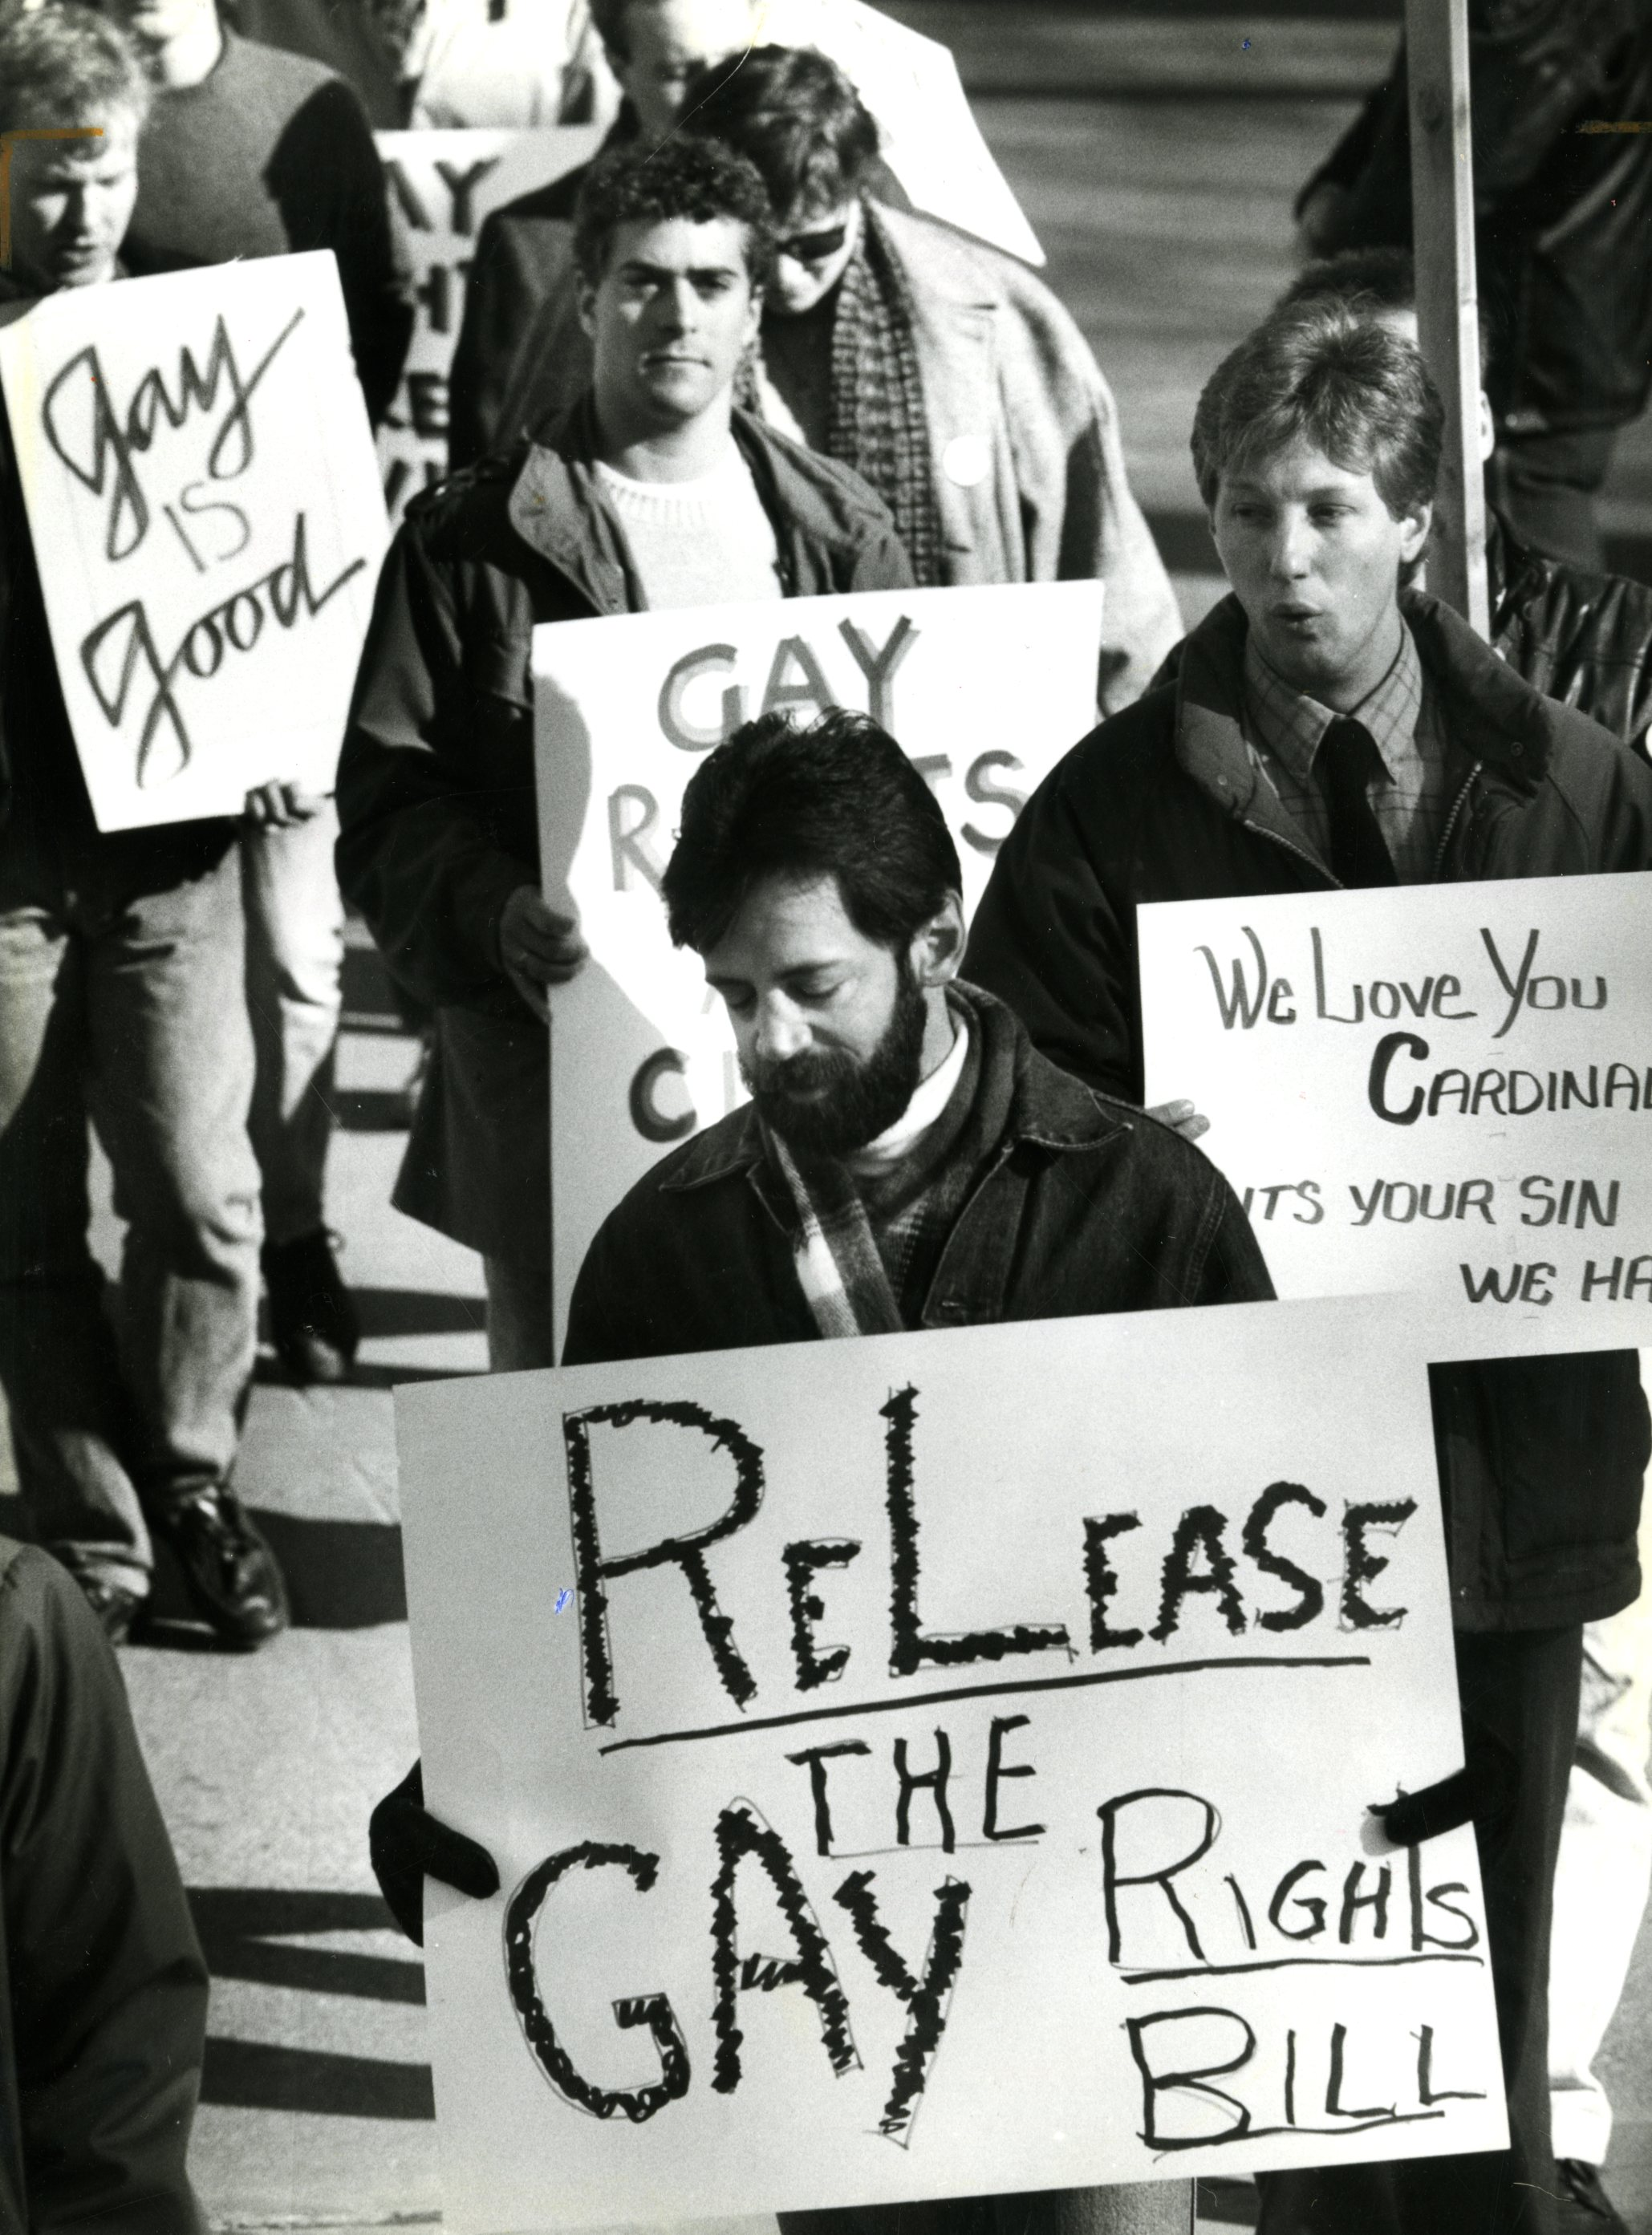 Twenty-five years ago, a key moment in gay rights fight